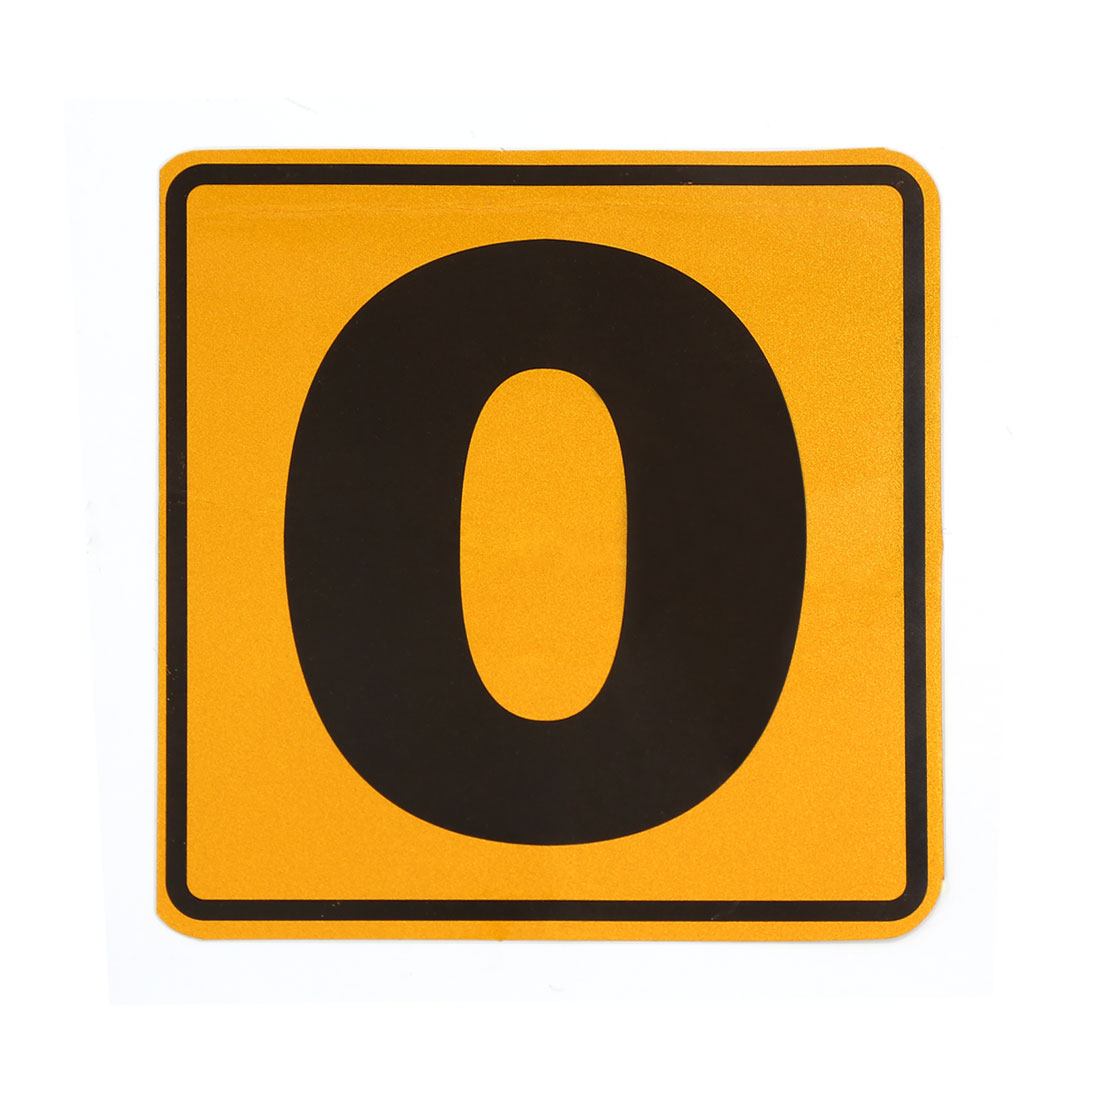 Number 0 Pattern Reflective Sticker Car Adhesive Decal Ornament Yellow Black